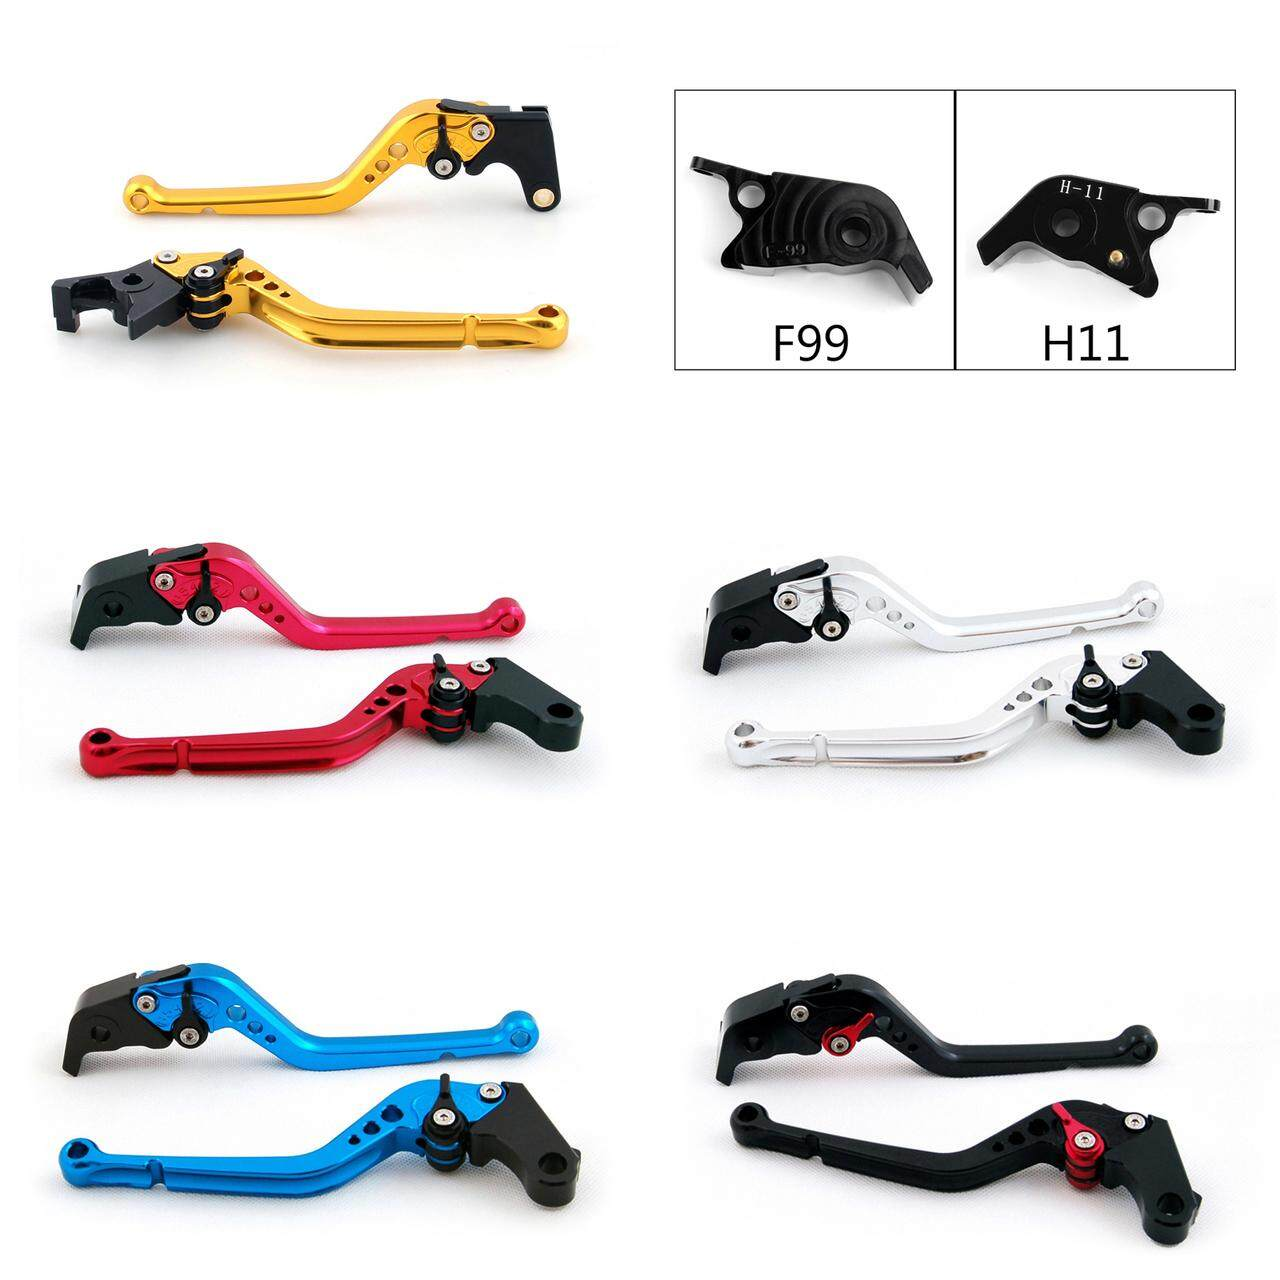 Standard Staff Length Adjustable Brake Clutch Levers Ducati 1198 S R (2009-2011)